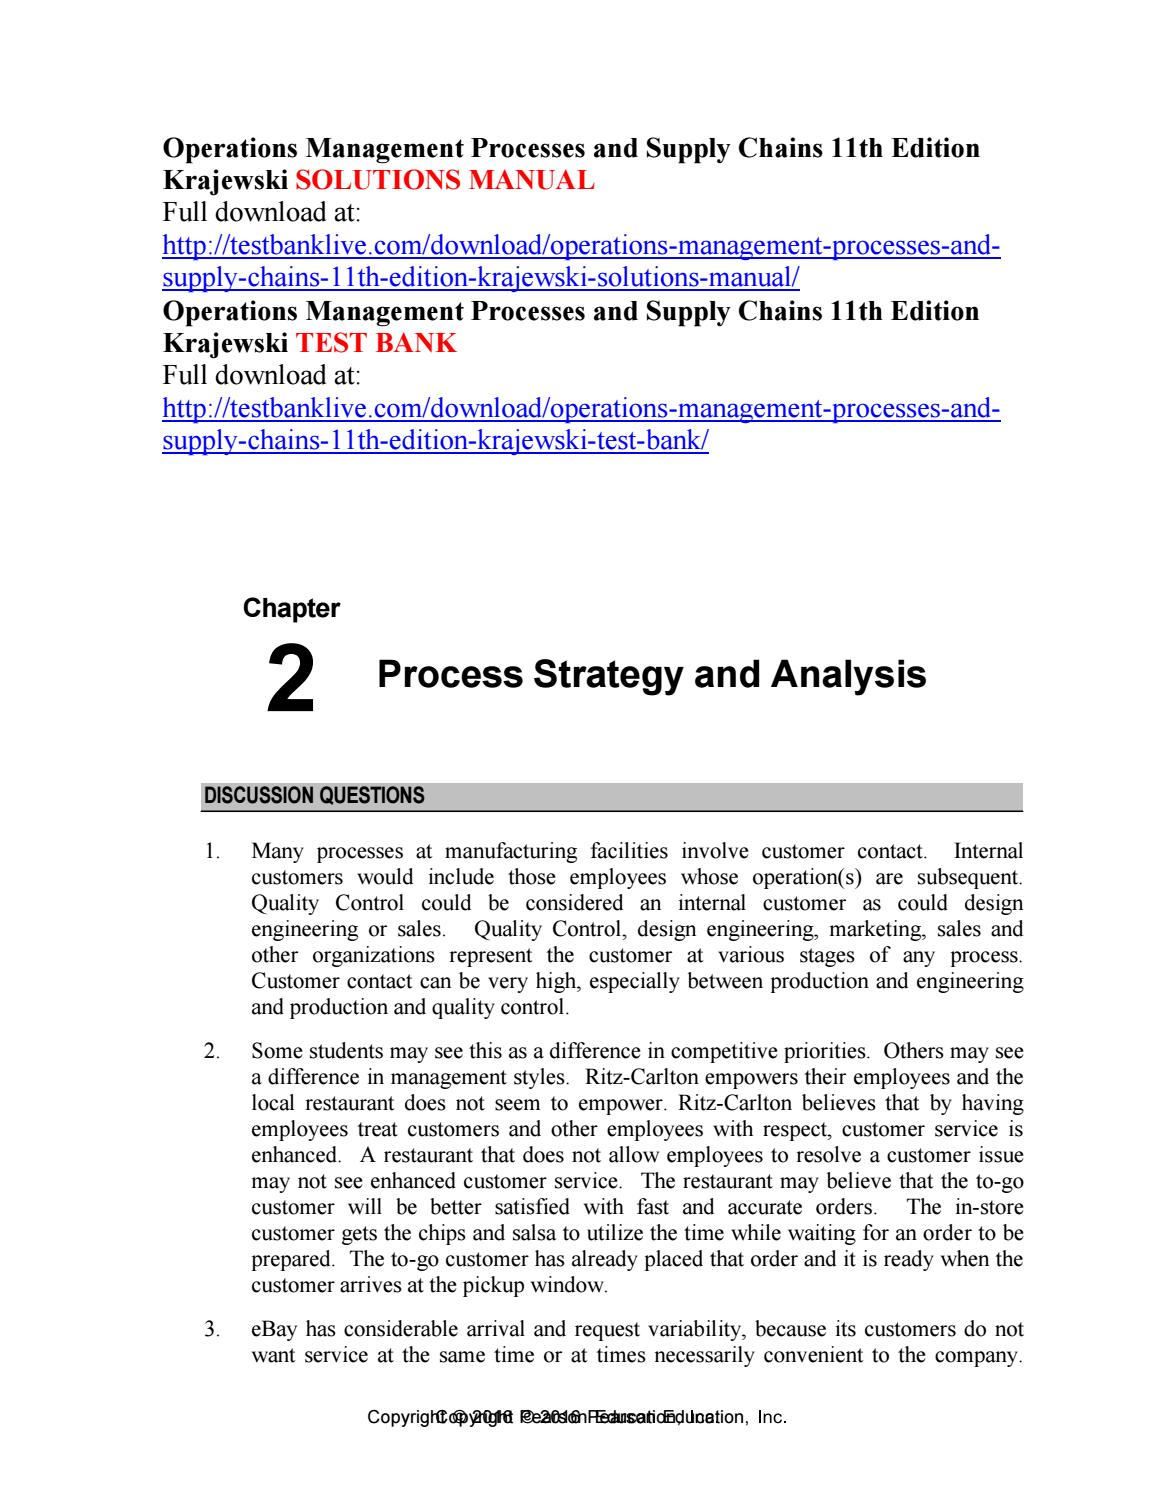 Operations management processes and supply chains 11th